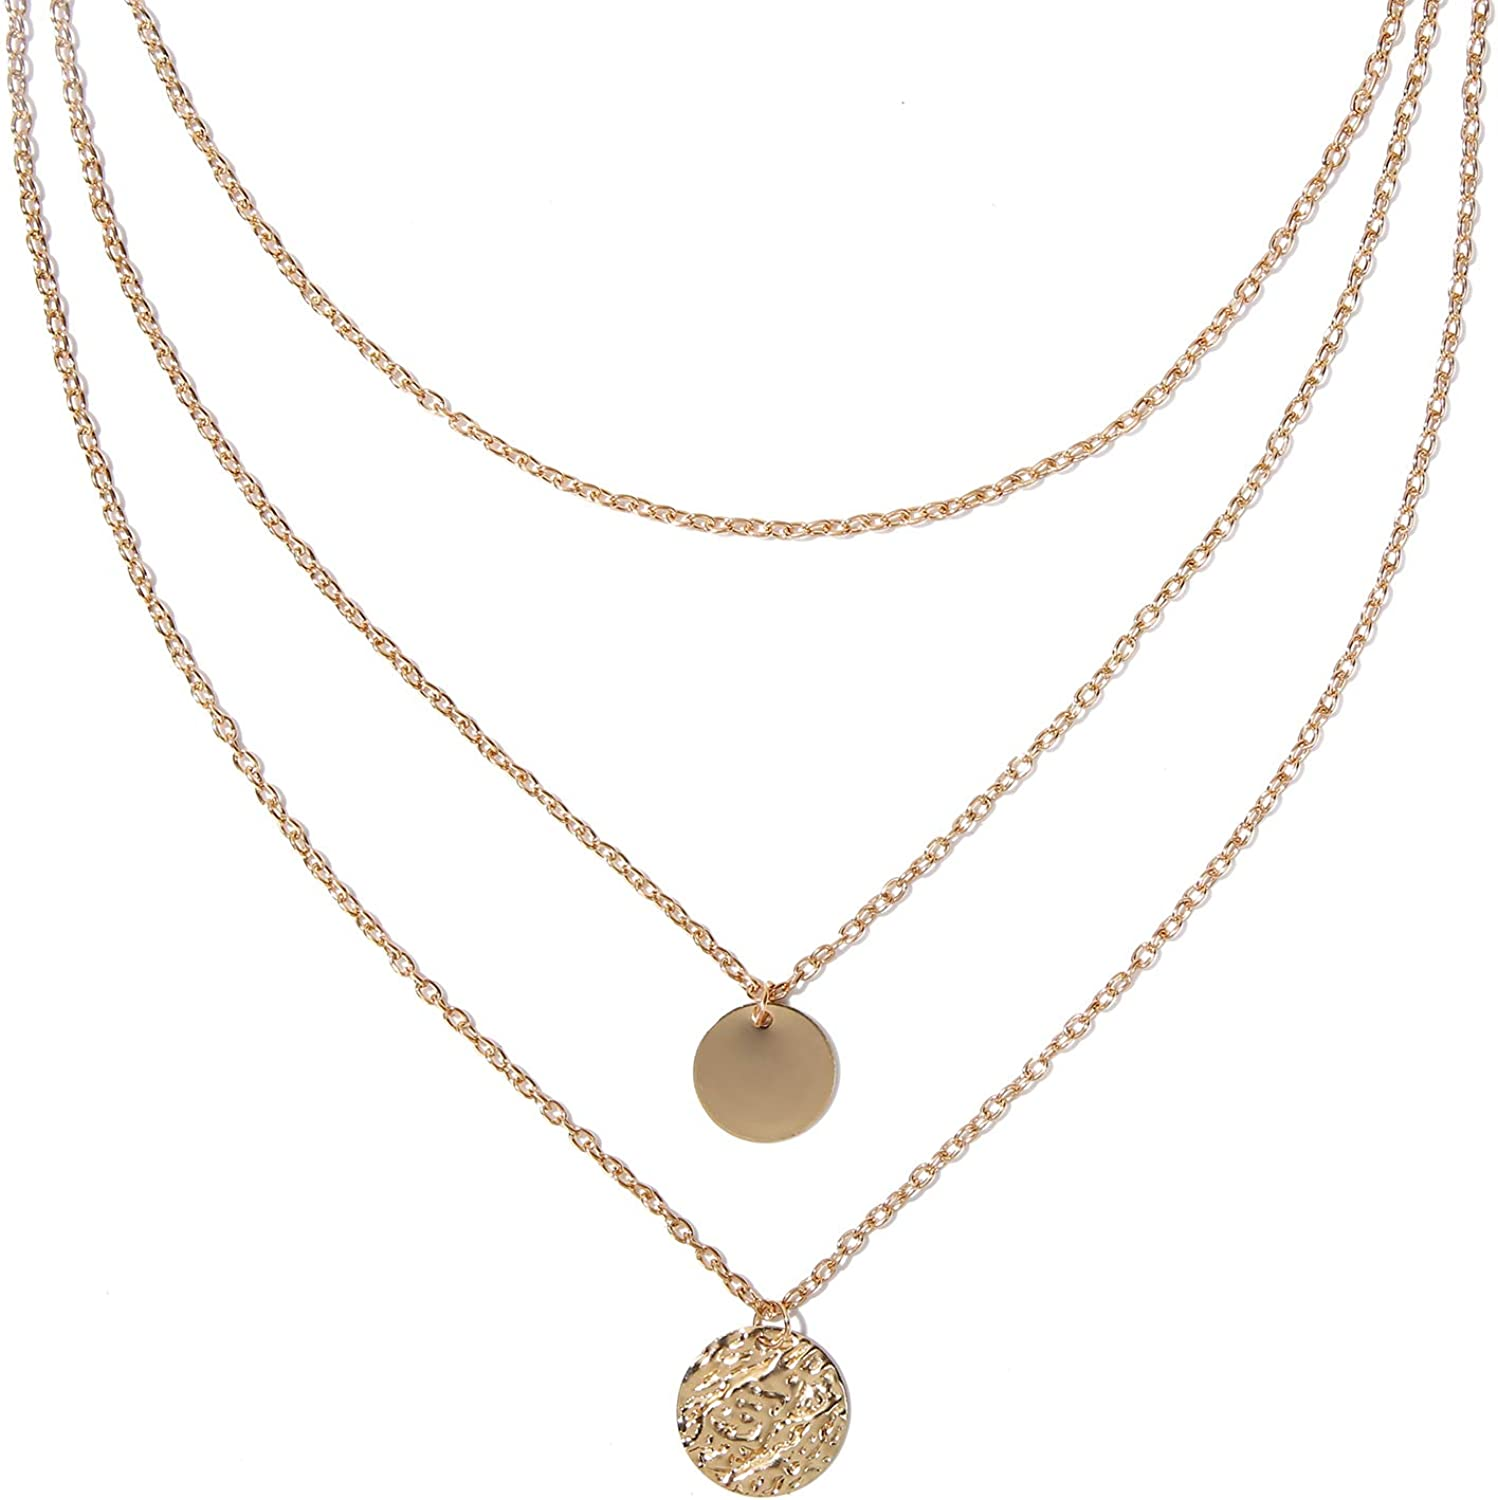 Necklace  Excellent 14K Gold Filled  Pendant Jewelry fashion Coin Design